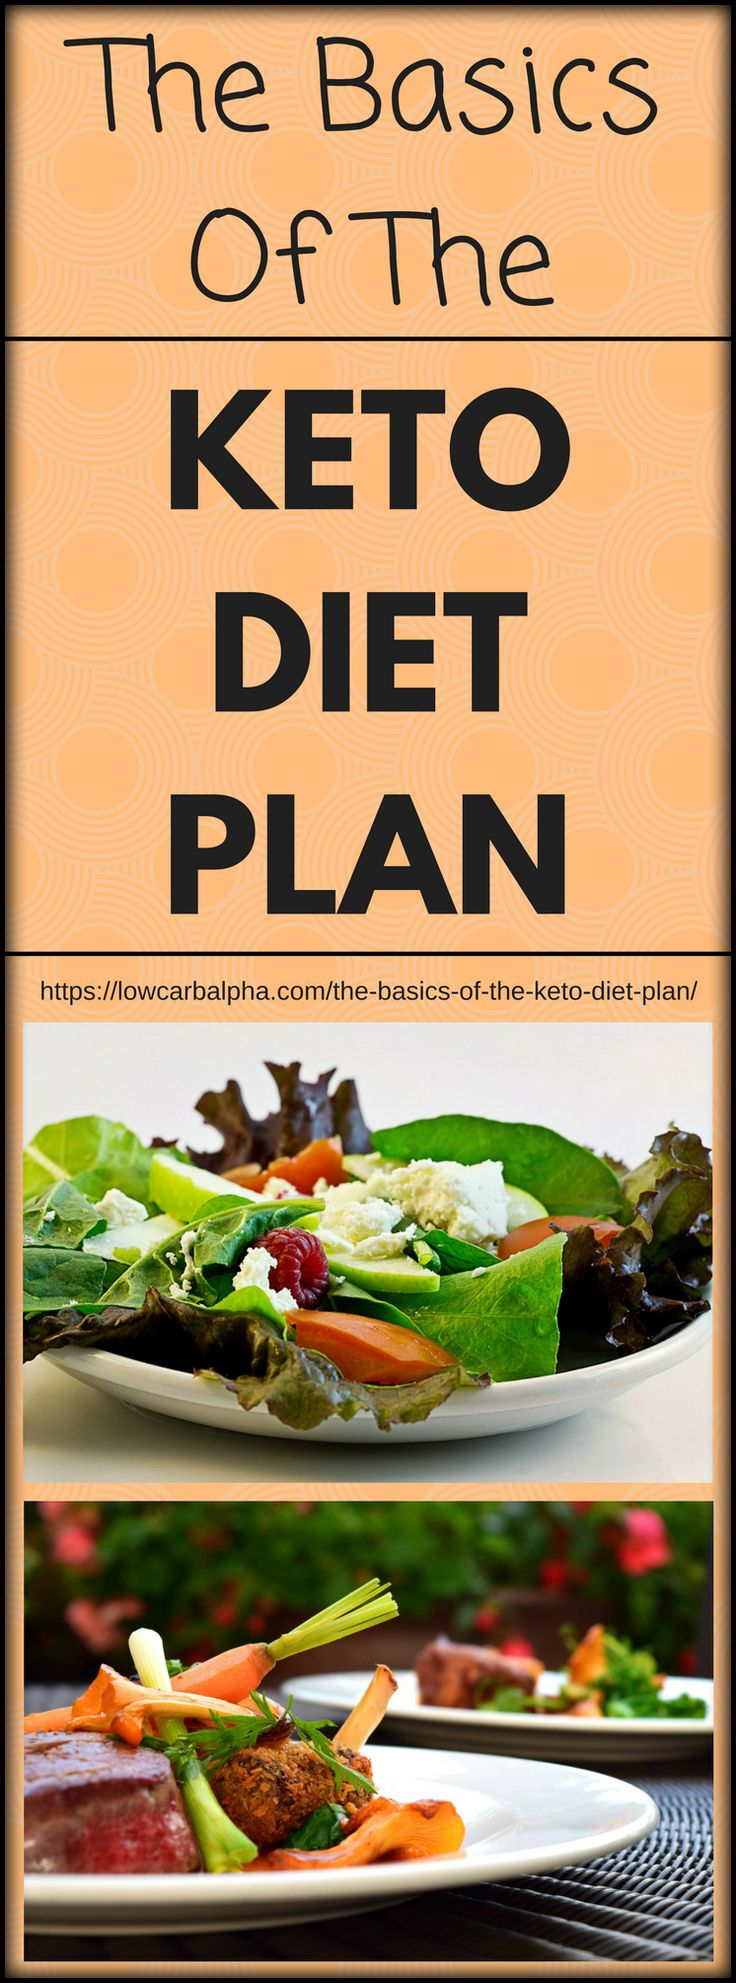 The Basics of the Keto Diet Plan https://lowcarbalpha.com/the-basics-of-the-keto-diet-plan/ The Ketogenic diet is a growing low carb high fat (LCHF) diet. Everybody nowadays is concerned about their health and which foods to eat. Worrying about keeping their bodies fit, strong, in shape, maintained and healthy. Burning ketones instead of glucose and following a high-fat ketogenic diet could be the answer #lowcarb #lowcarbdiet #ketogenicdiet #lowcarbhighfat #ketosis #fatloss